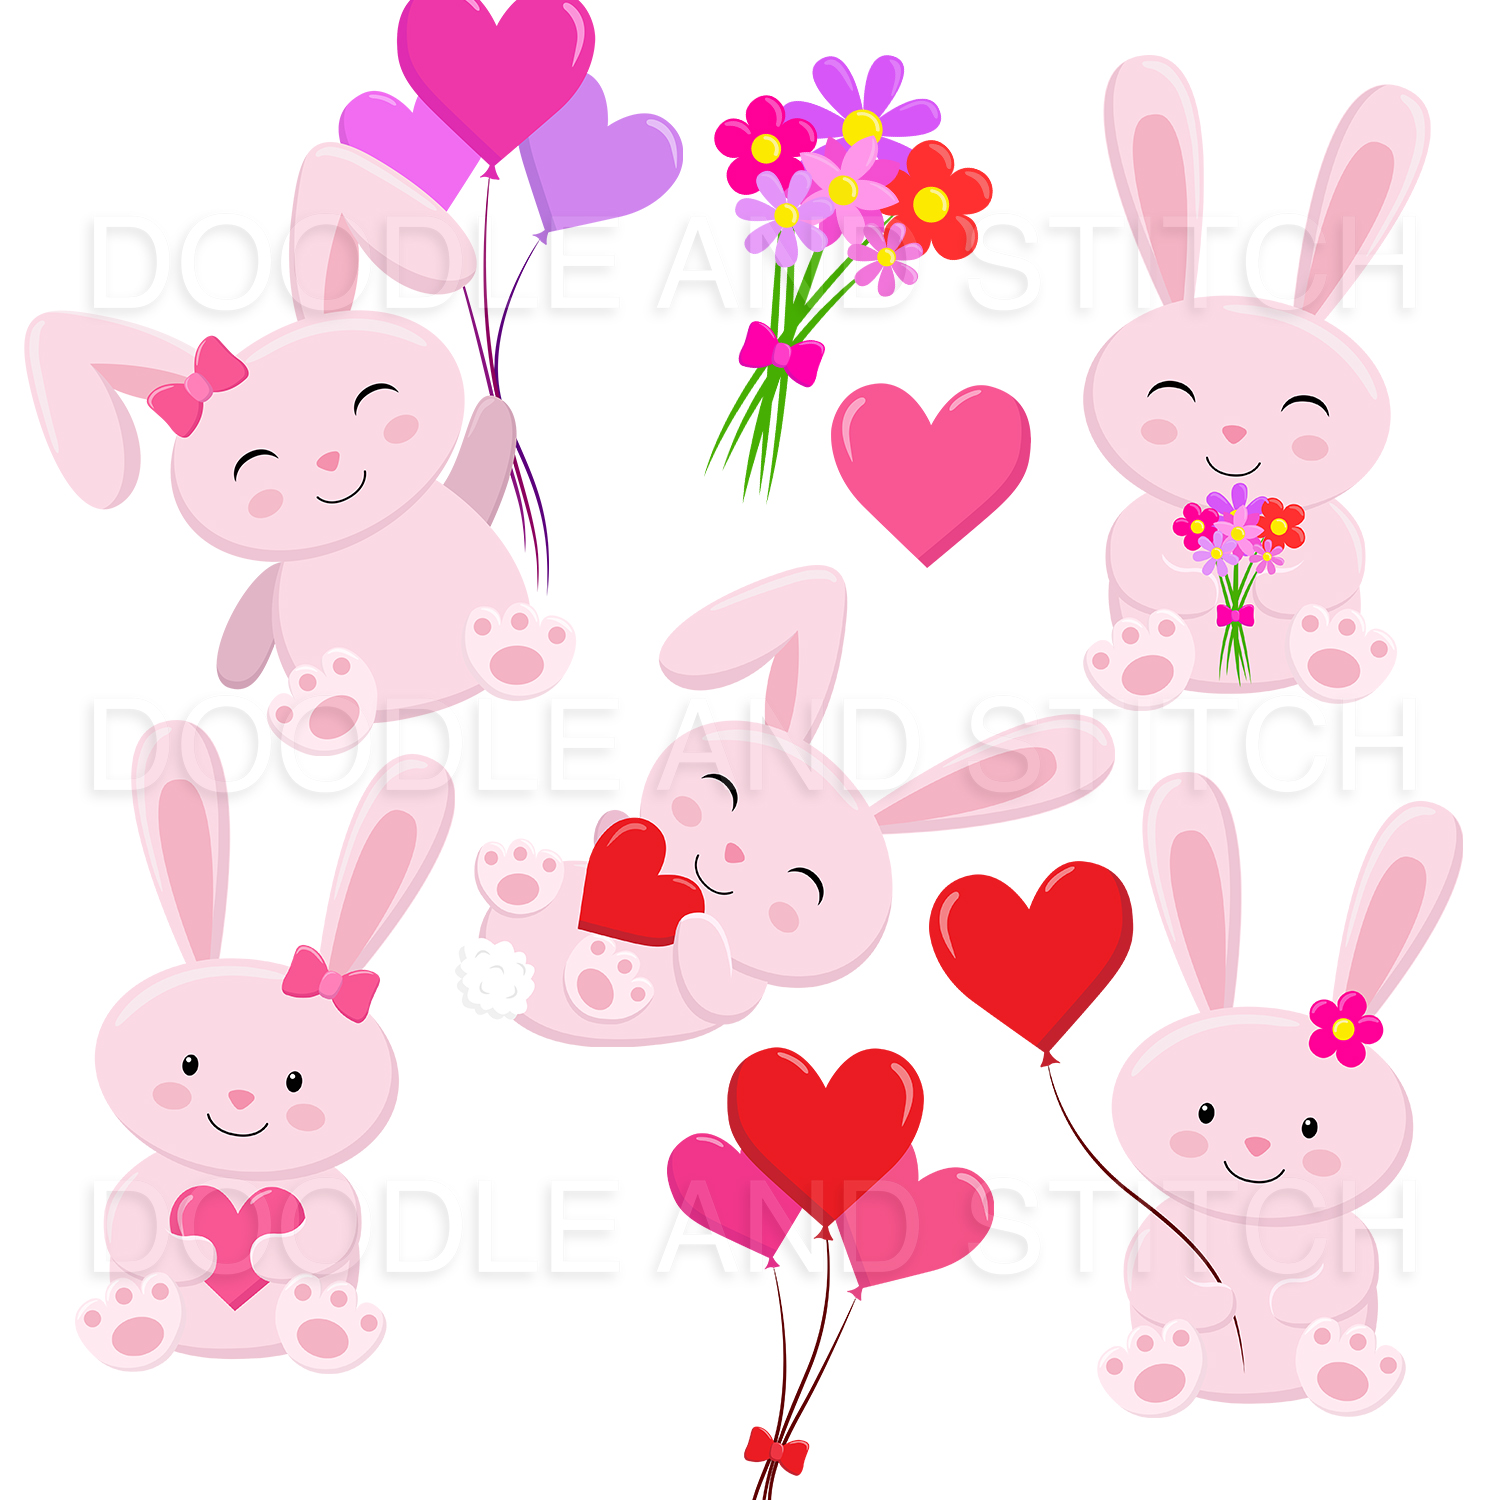 Love Bunny Clipart Illustrations example image 3